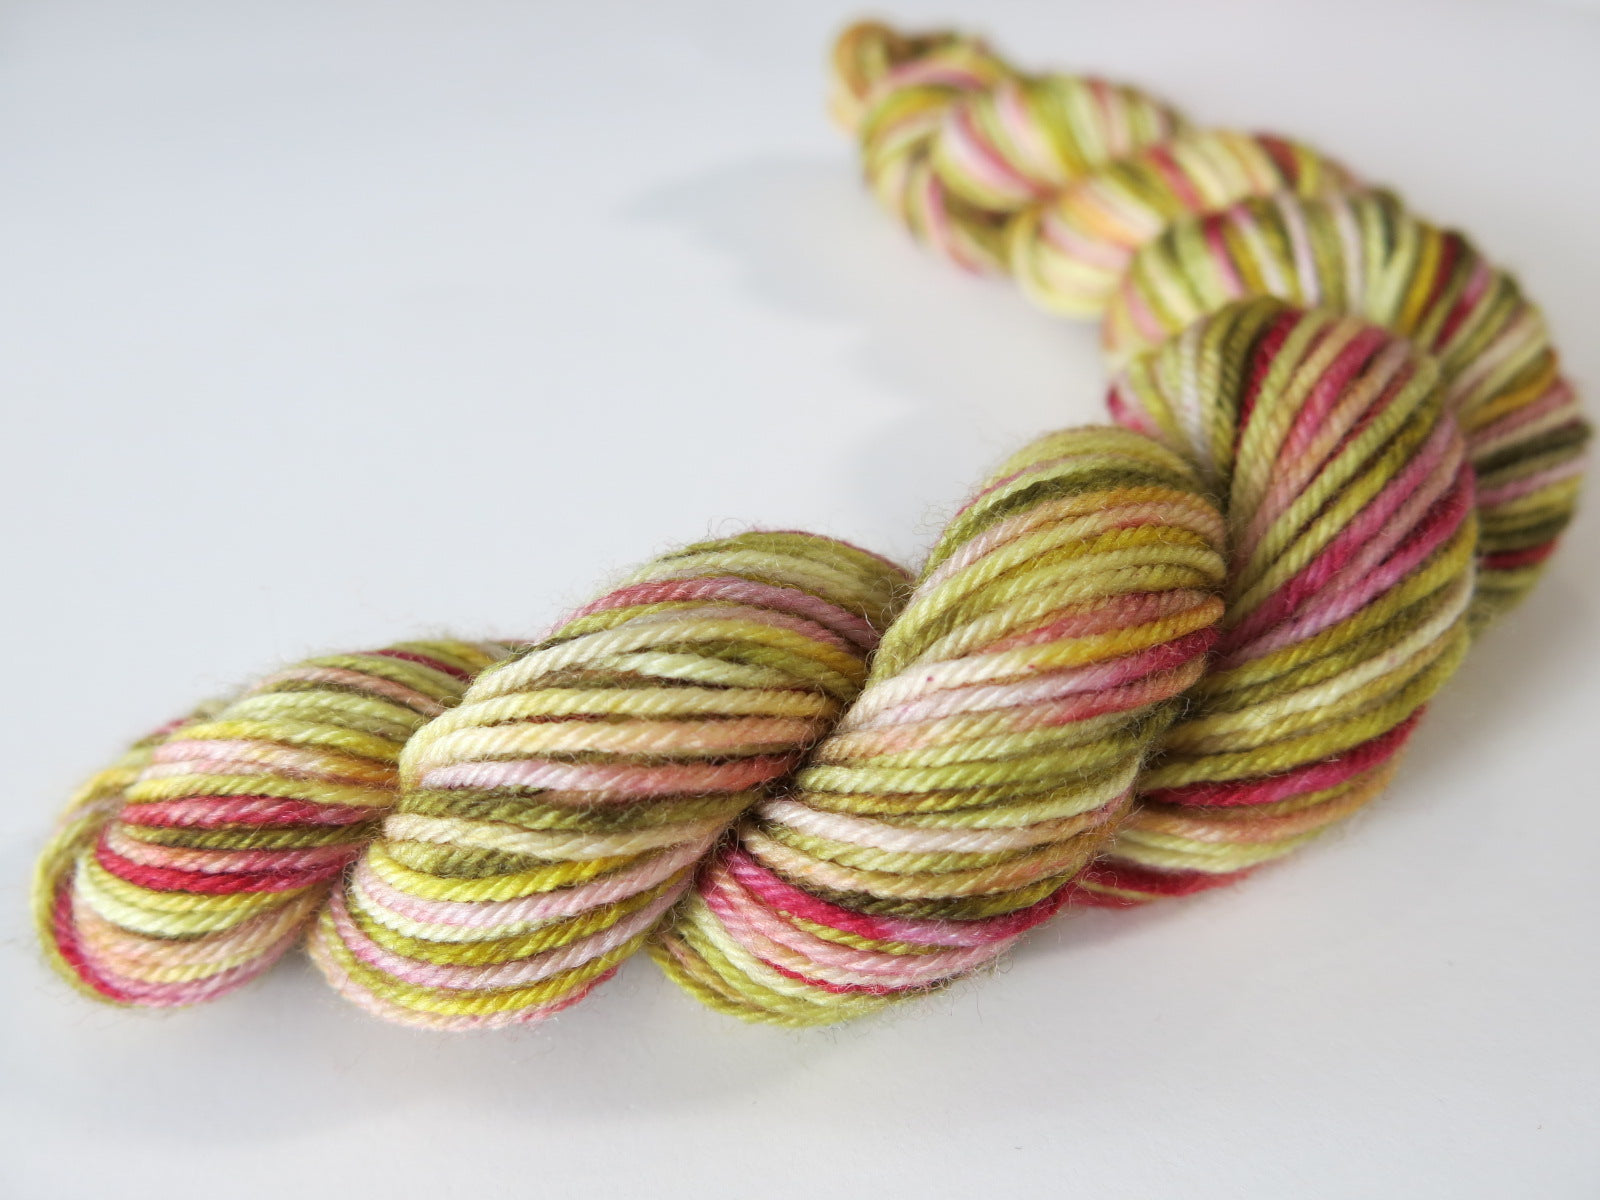 trout inspired hand dyed yarn in greens and reds